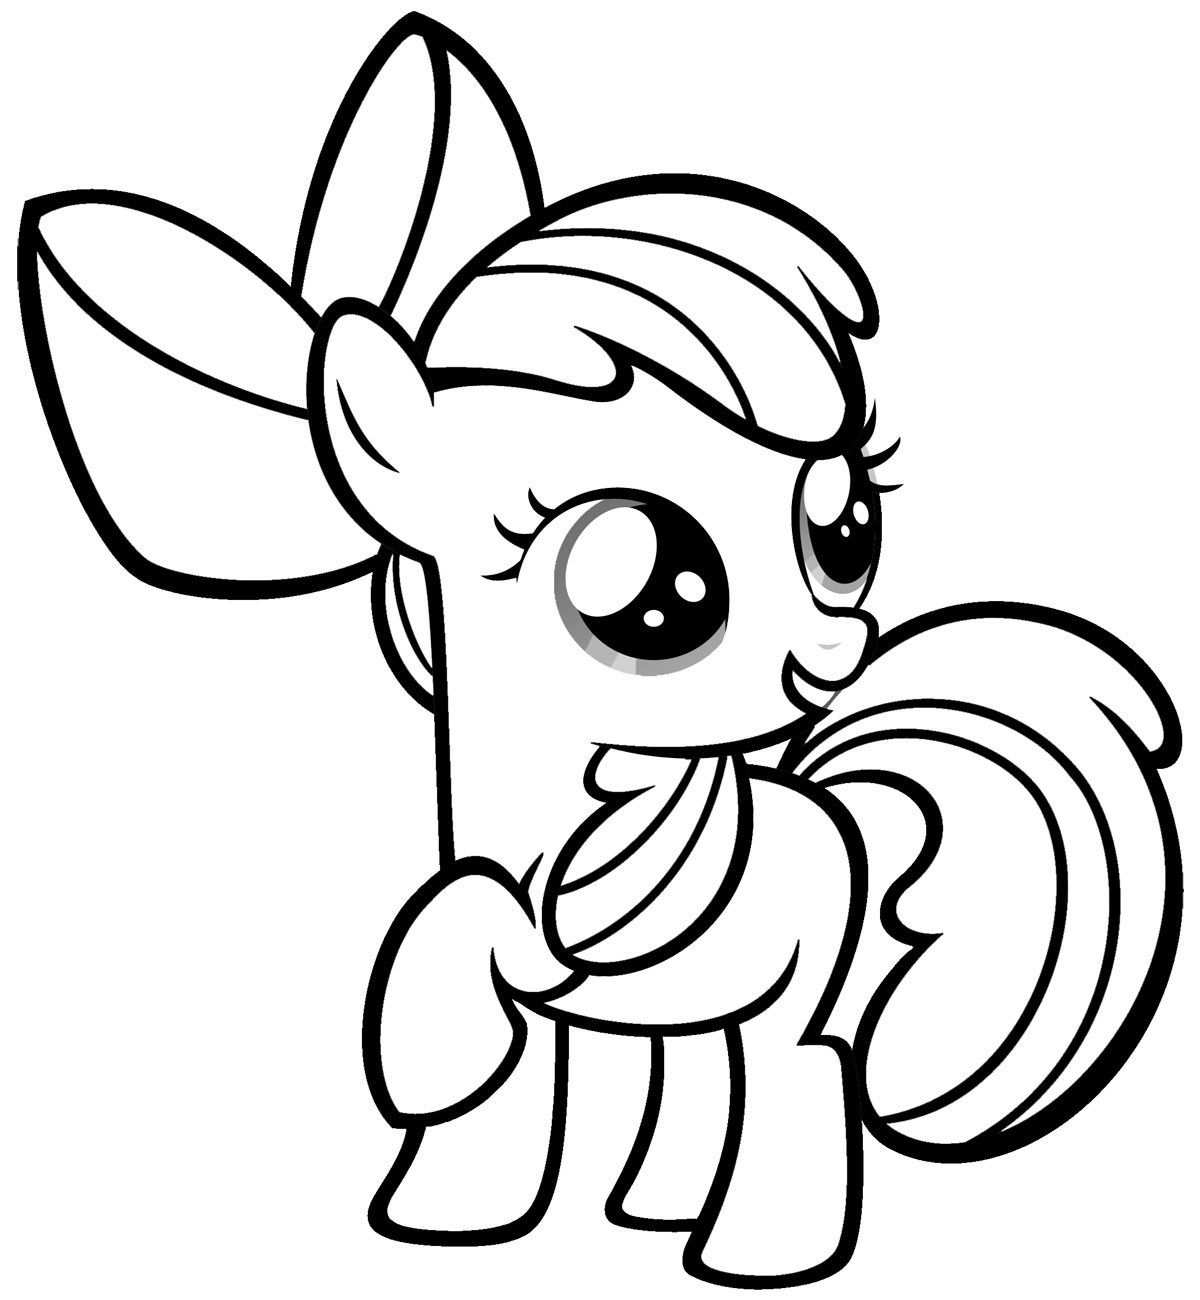 image relating to Pony Printable Coloring Pages called Pin upon Publications Really worth Looking at